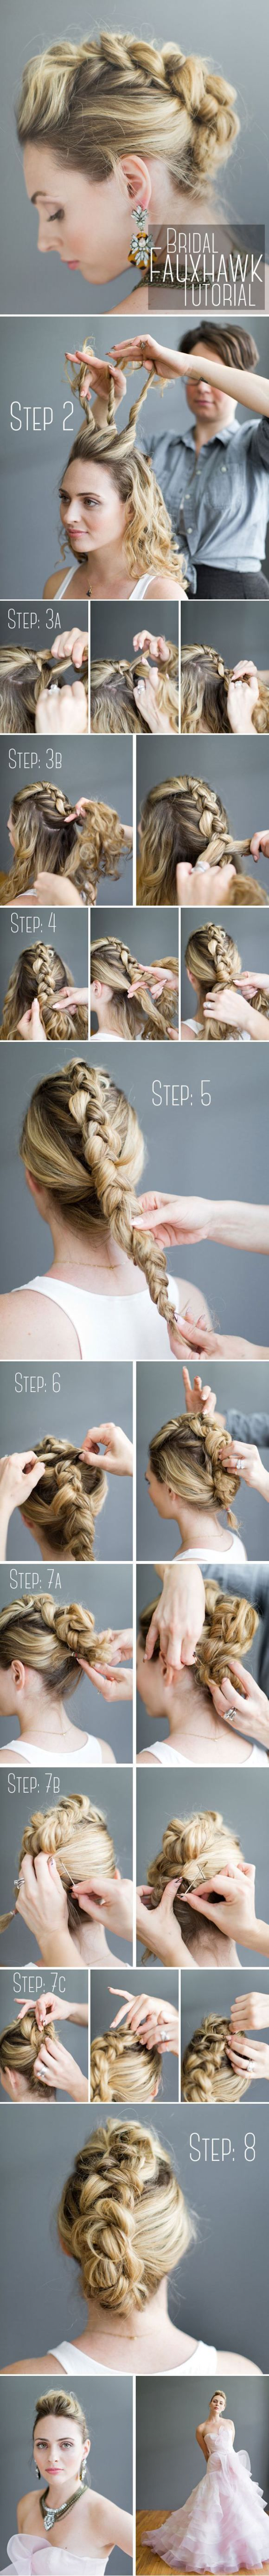 9 Pinterest – Inspired Braid Hairstyles